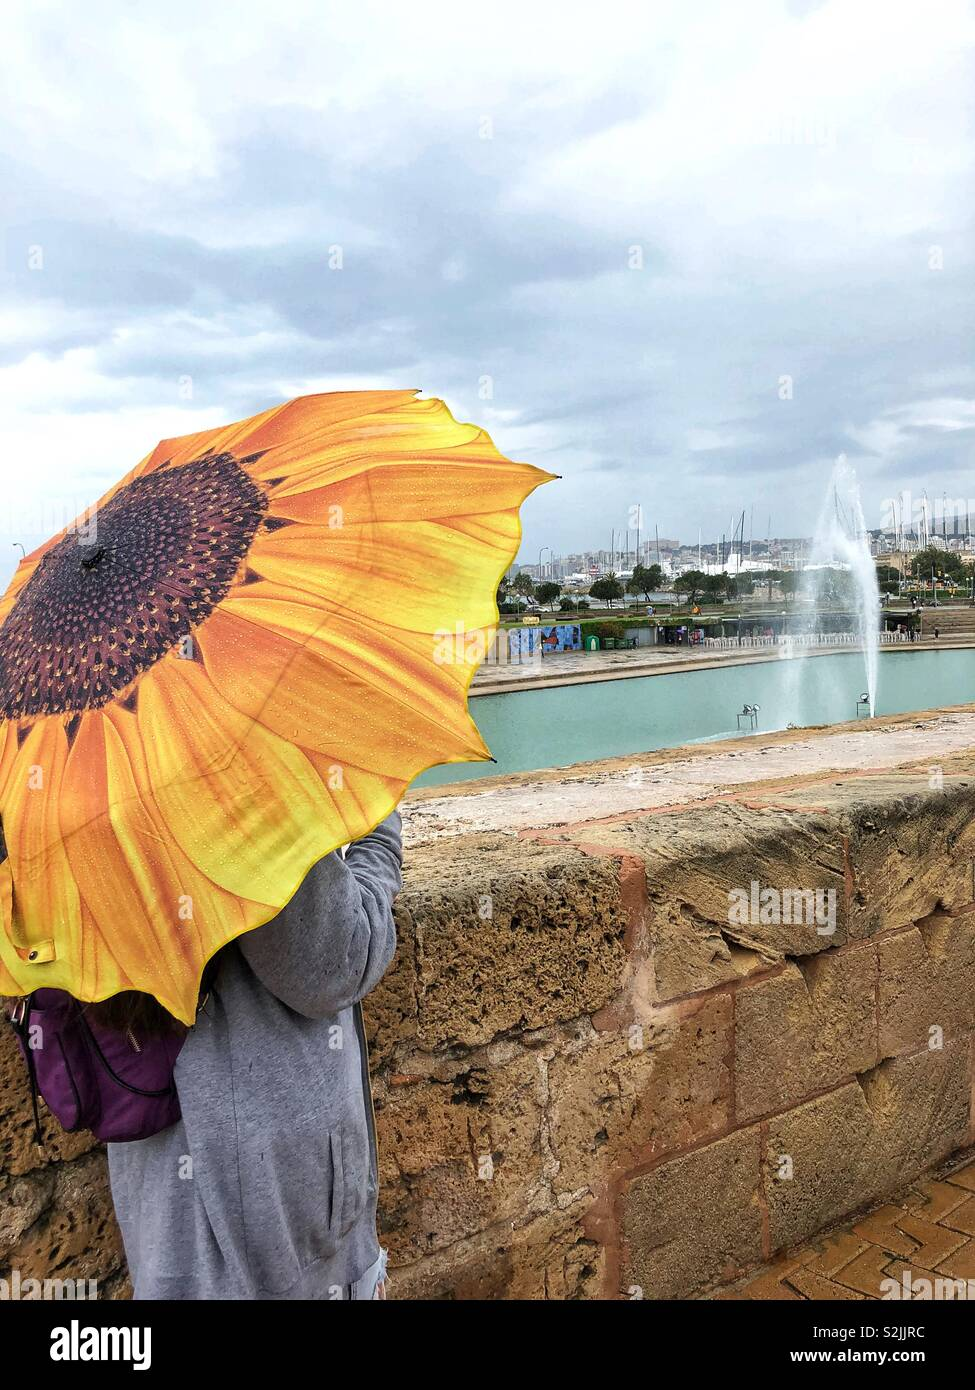 A girl is standing on a rainy day under an yellow umbrella in the form of a sunflower near an ancient stone fence against the background of a pond with a fountain and a sea port - Stock Image